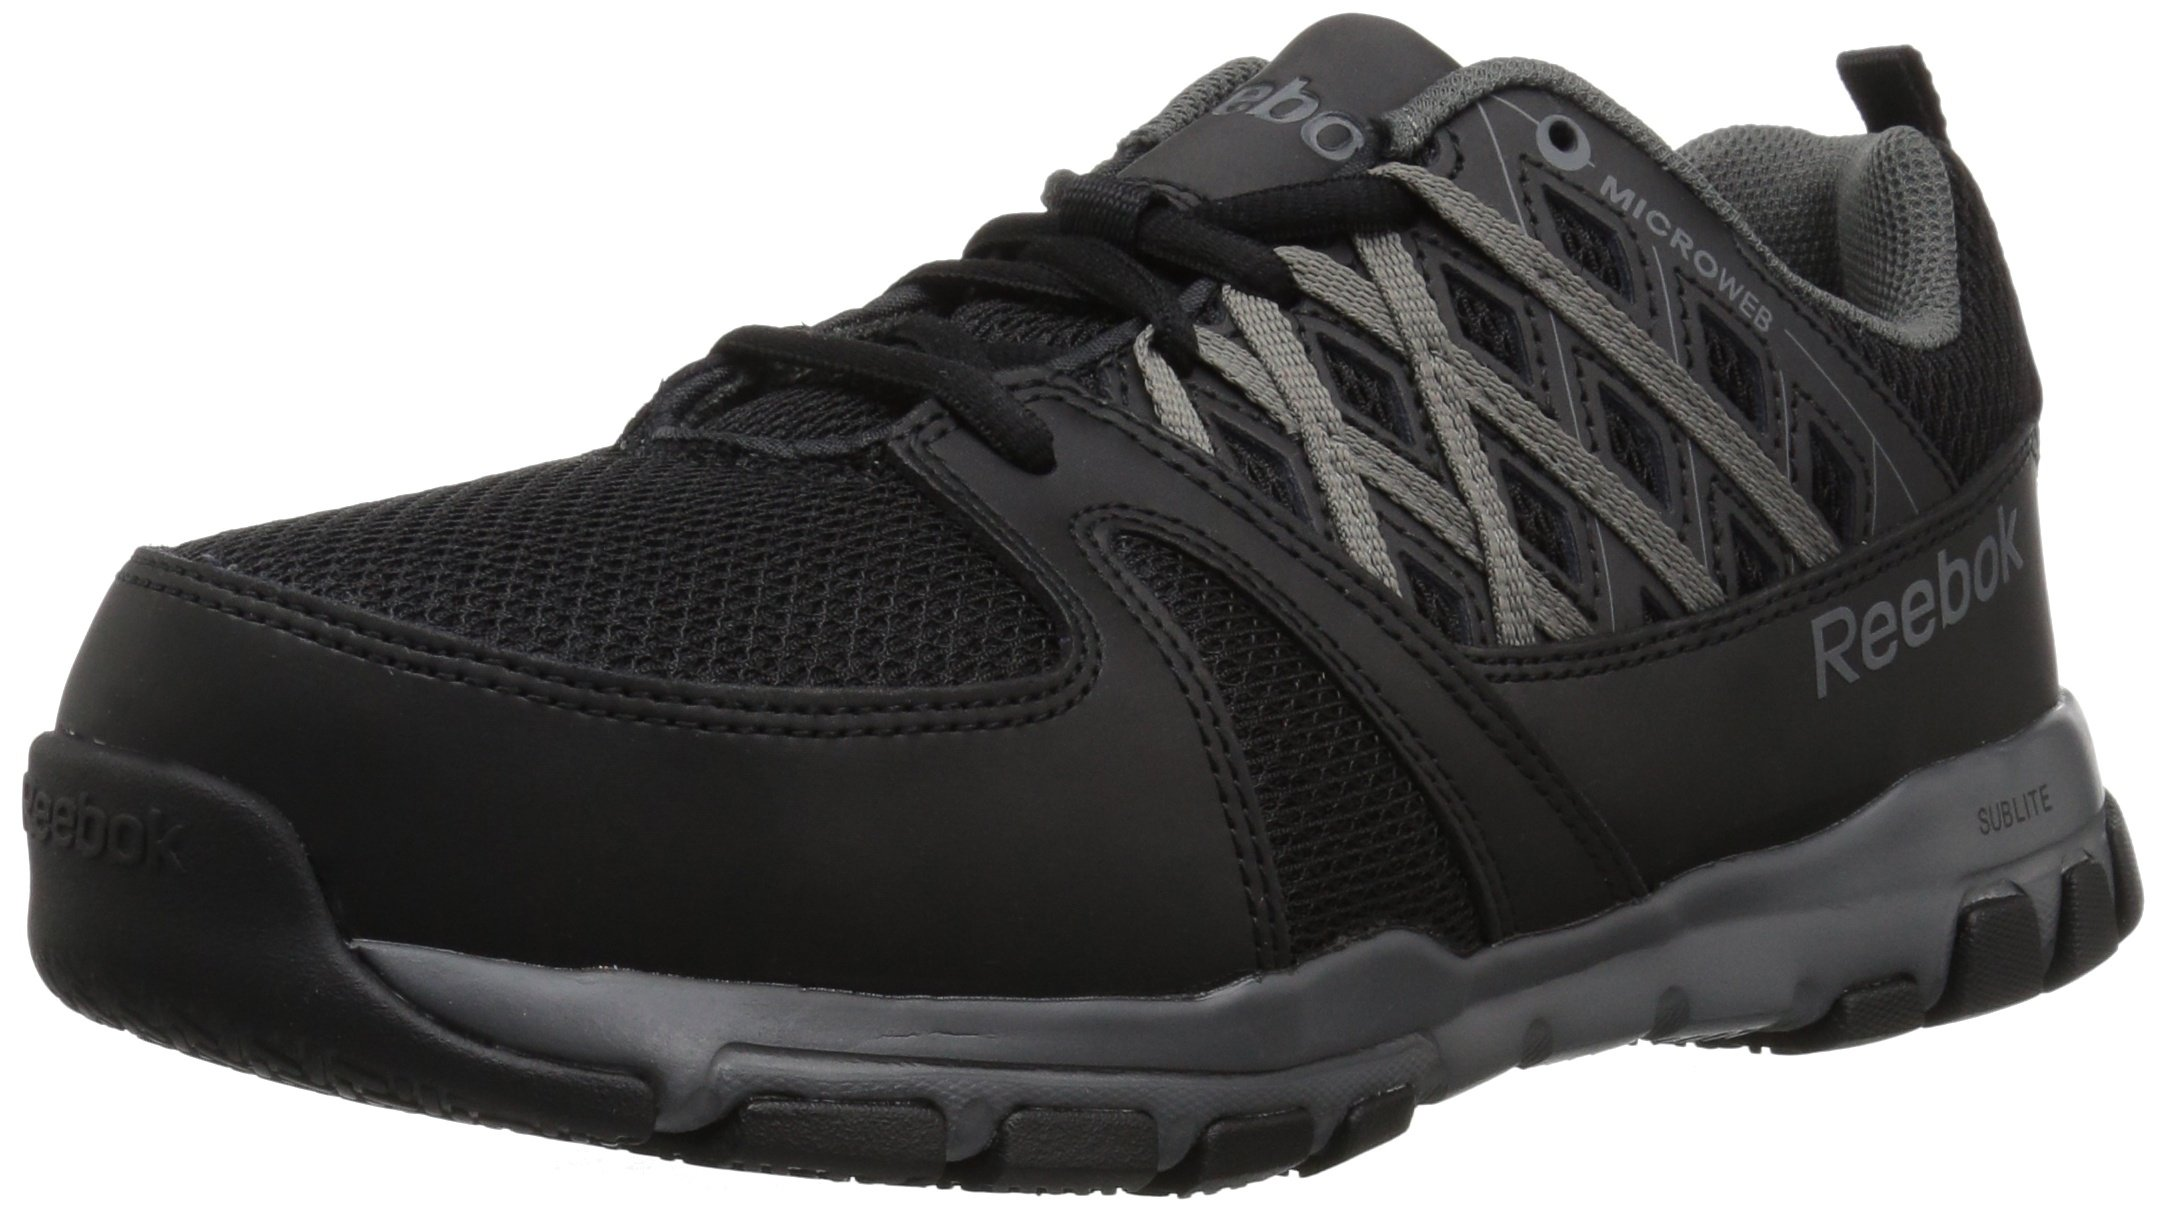 1118dea2c7232c Reebok Men s Sublite Work Rb4016 Oxford Black Grey 7.5 W US